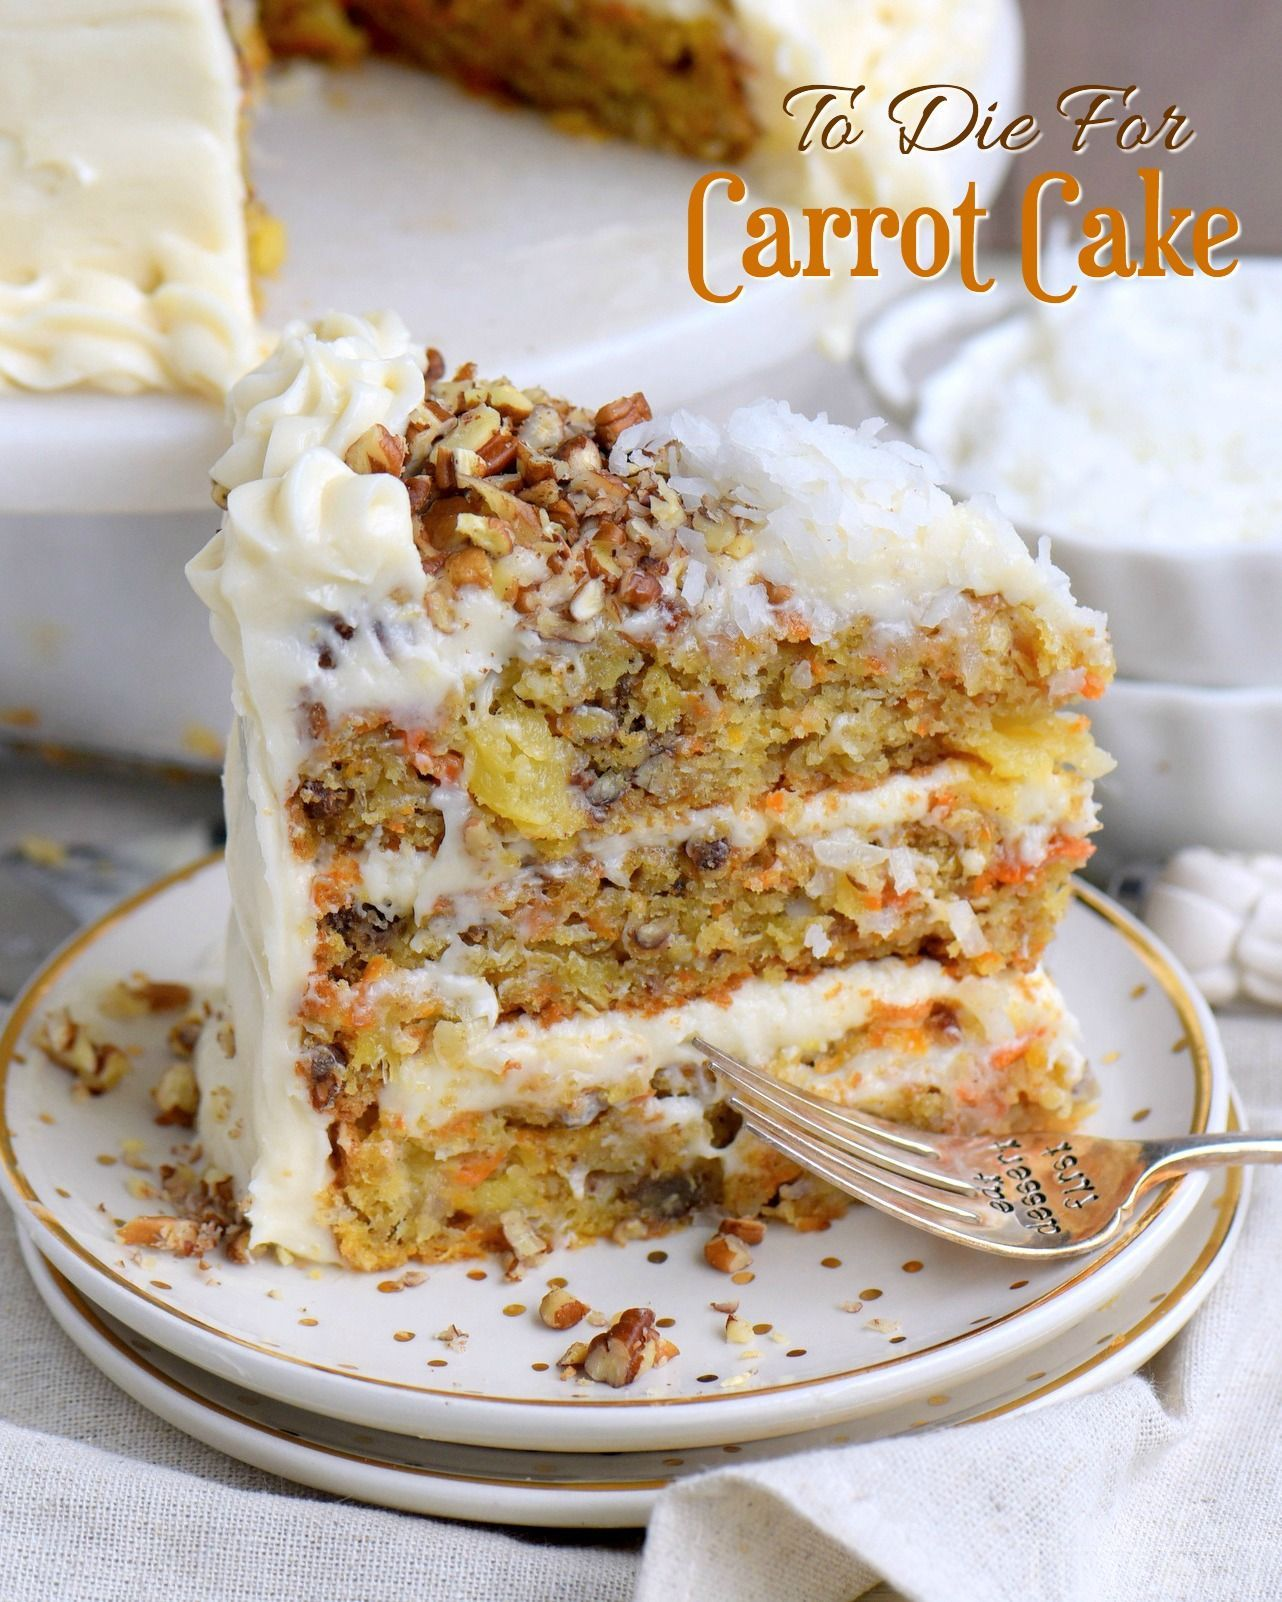 To Die For Carrot Cake receives rave reviews for it's unbelievable moistness and flavor! Truly the BEST CARROT CAKE you'll ever try! So easy to make and as an added bonus, there's no oil or butter! I know this cake will quickly become a family favorite! // Mom On Timeout